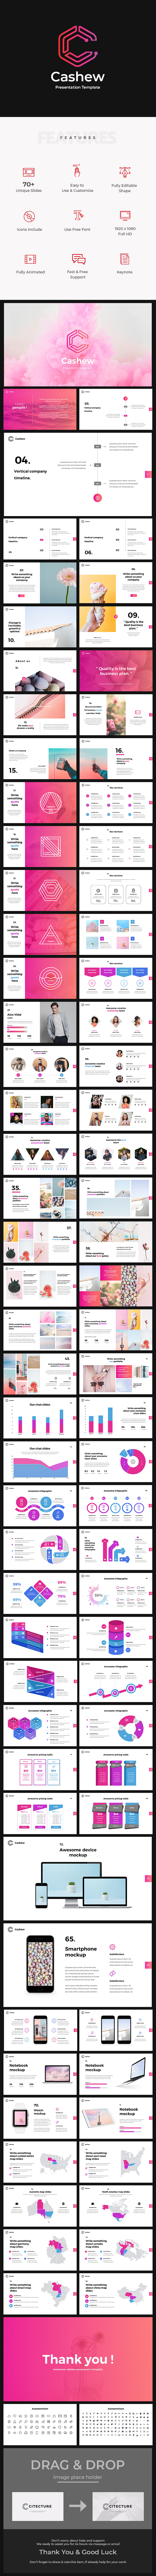 GraphicRiver Cashew Google Slides 21193916